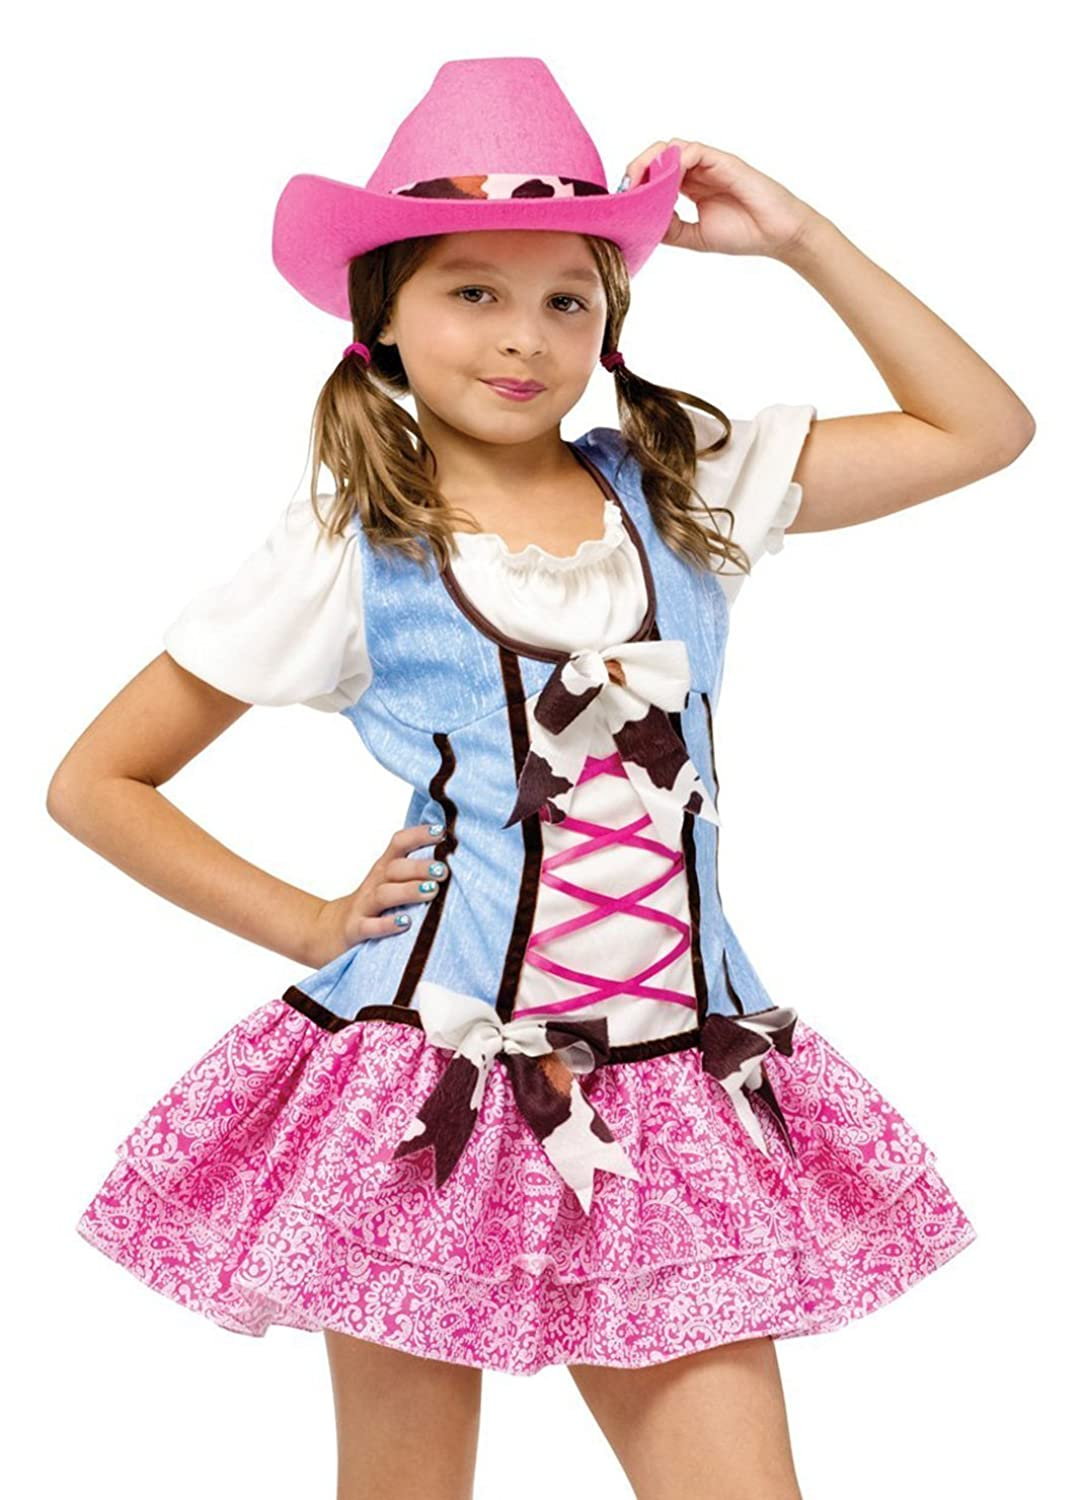 Home ladies costumes rodeo gal costume - Amazon Com Fun World Costumes Baby Girl S Rodeo Sweetie Toddler Costume Clothing